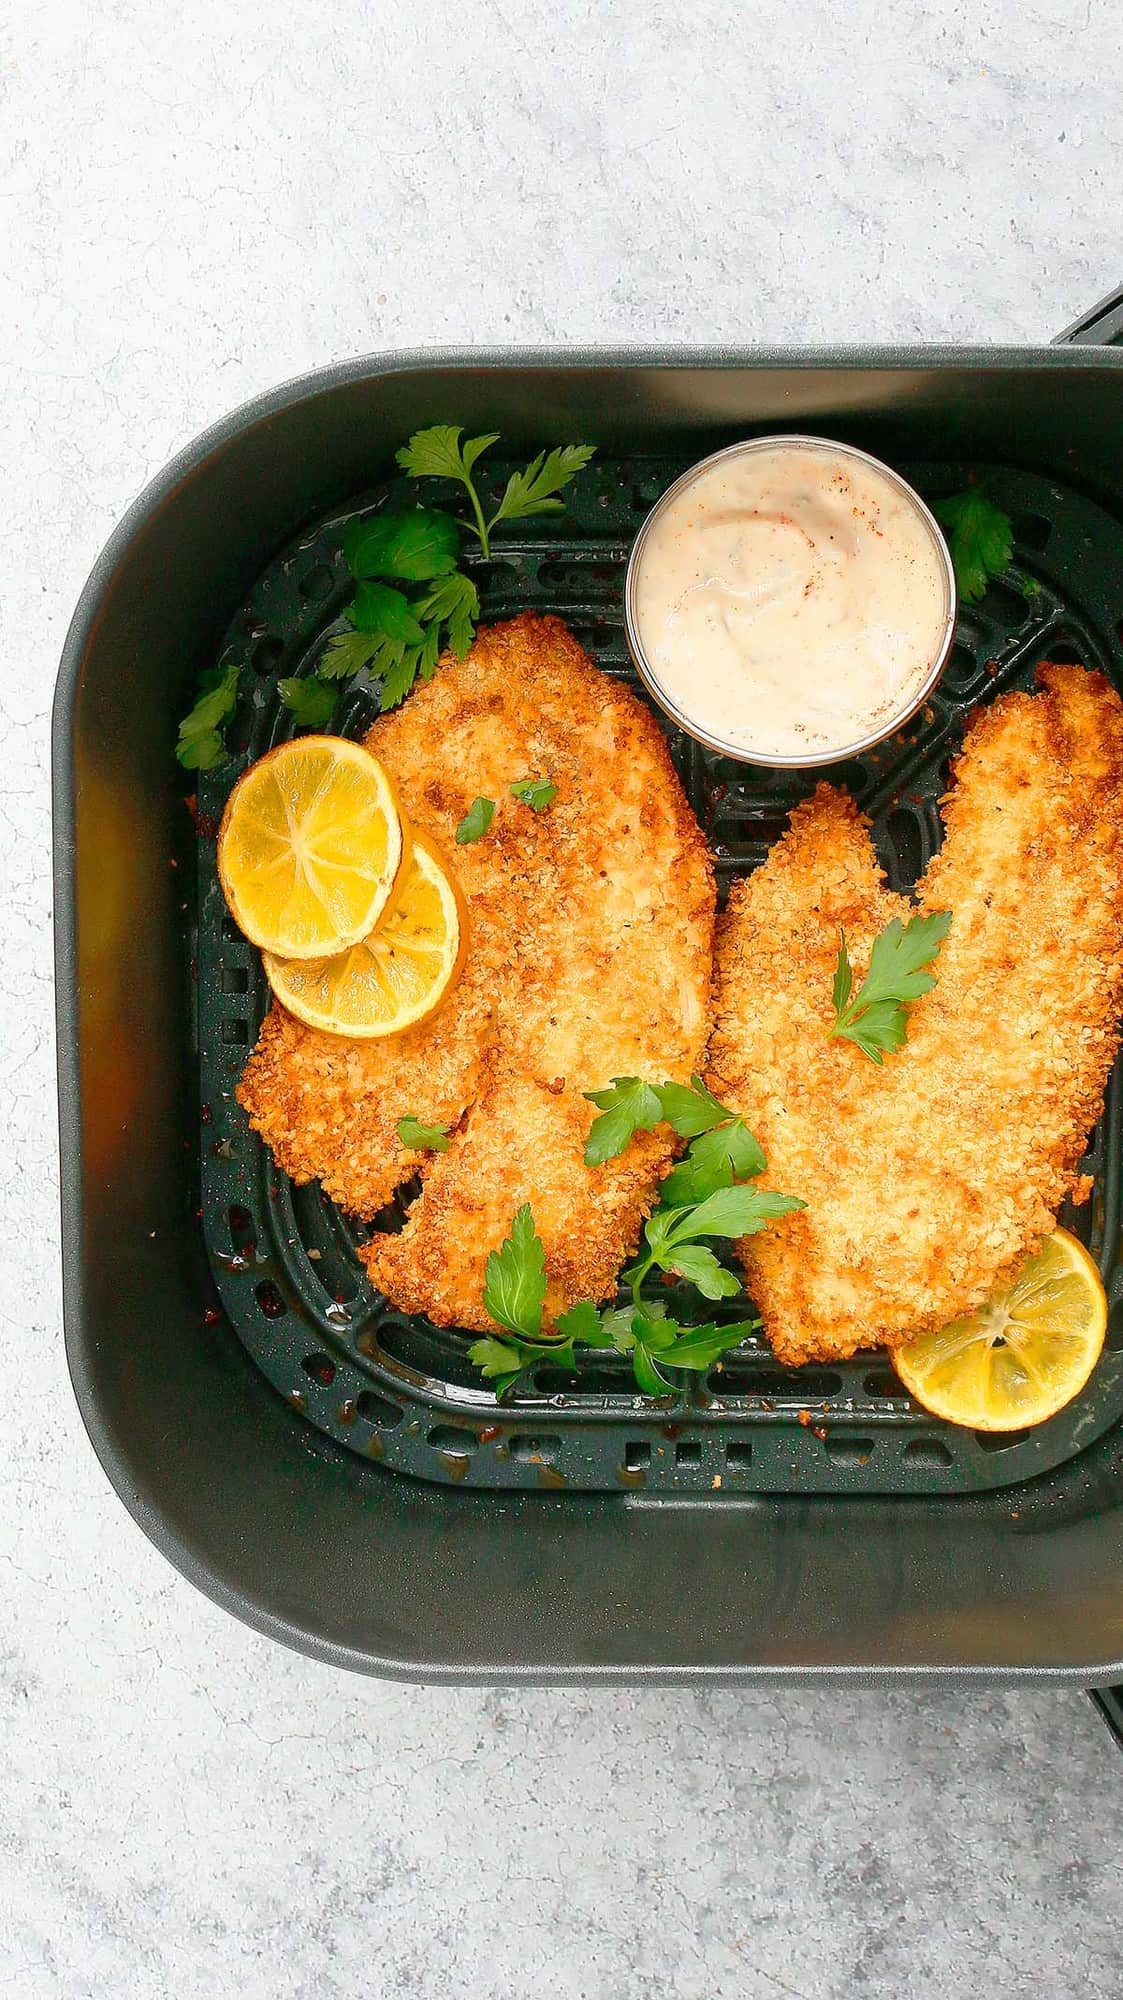 an air fryer basket with cooked tilapia along with tarter sauce